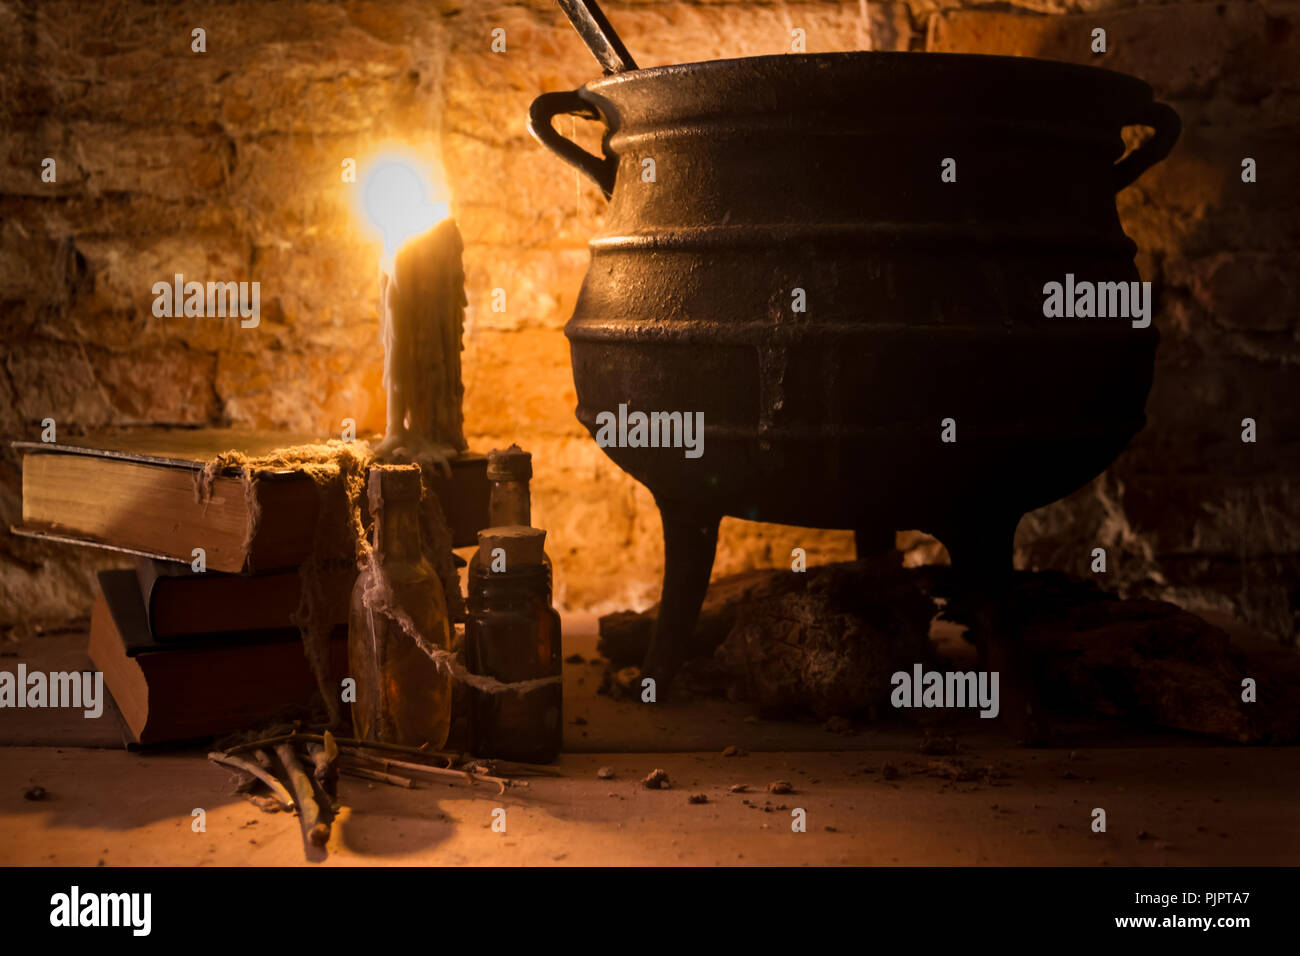 spell of witch night with candles and pot with fire between cobwebs and ancient earth - Stock Image